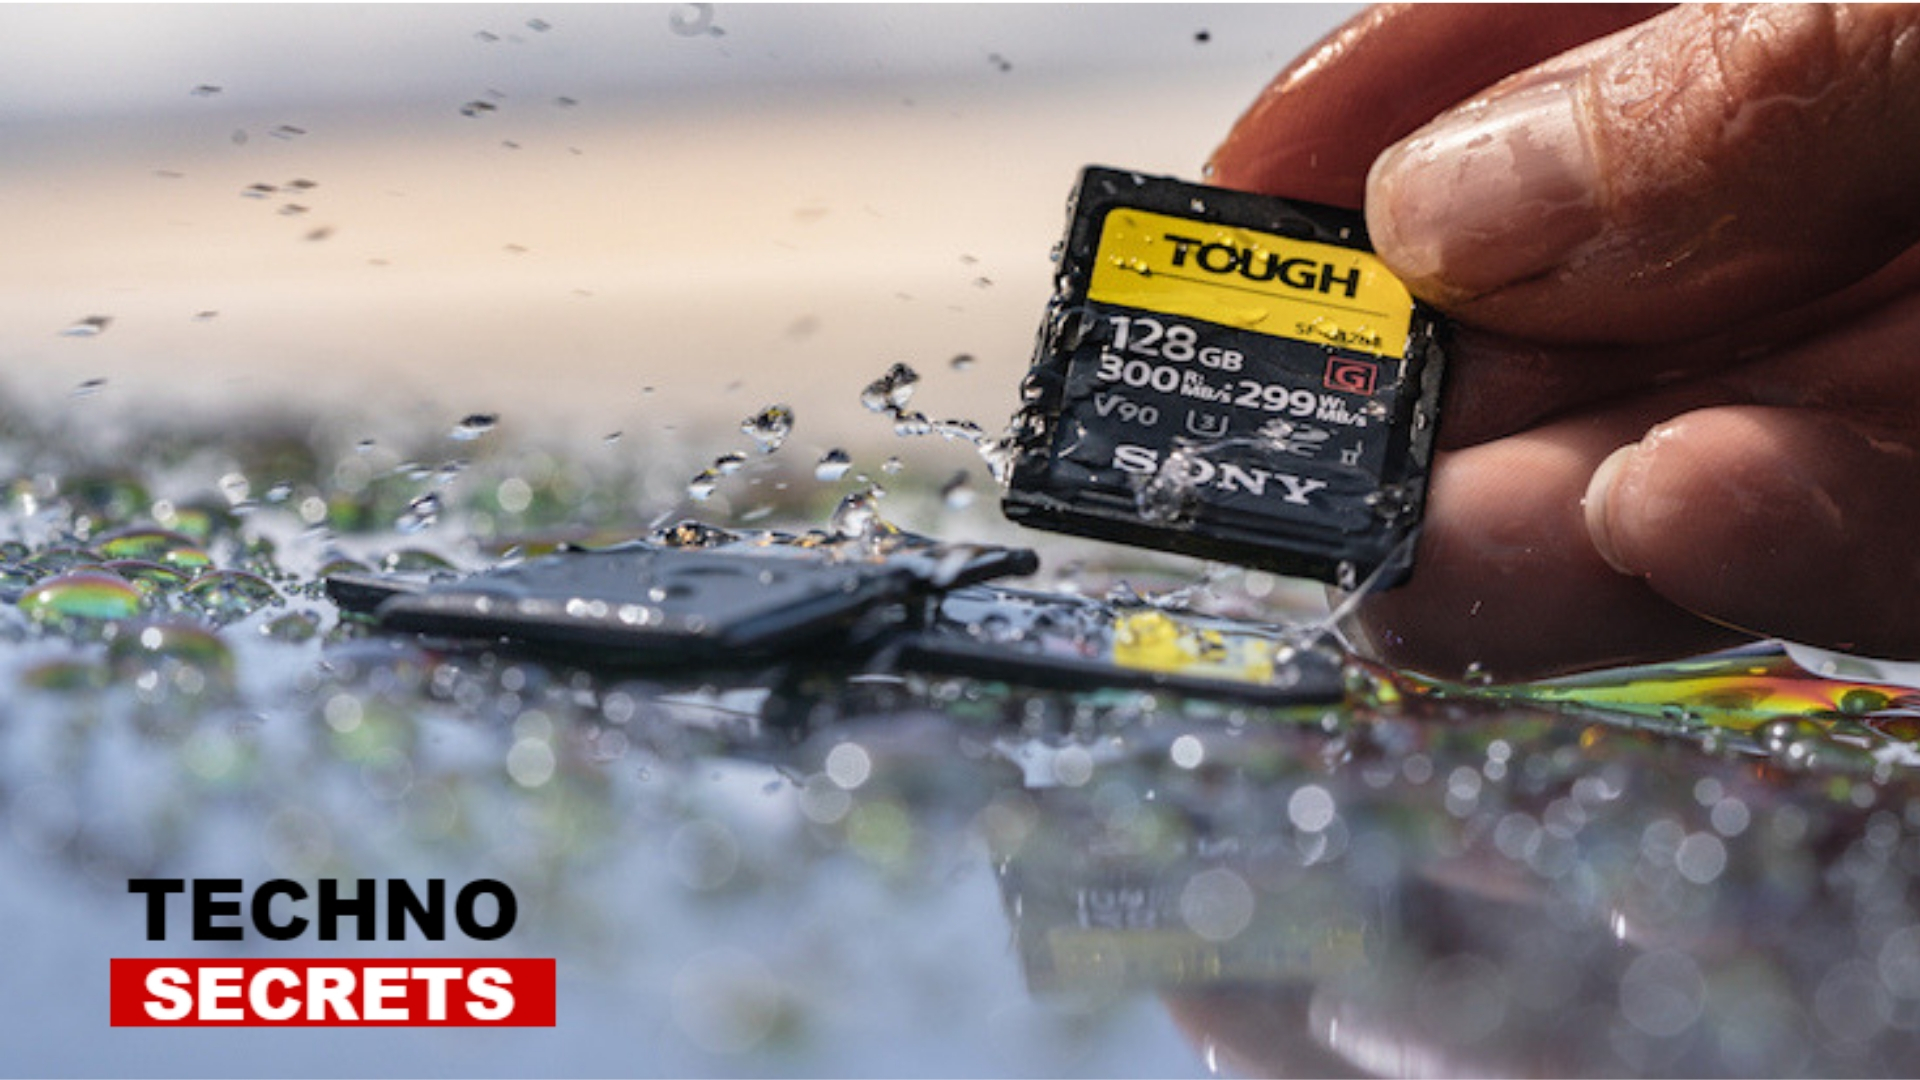 world's toughest and fastest SD card